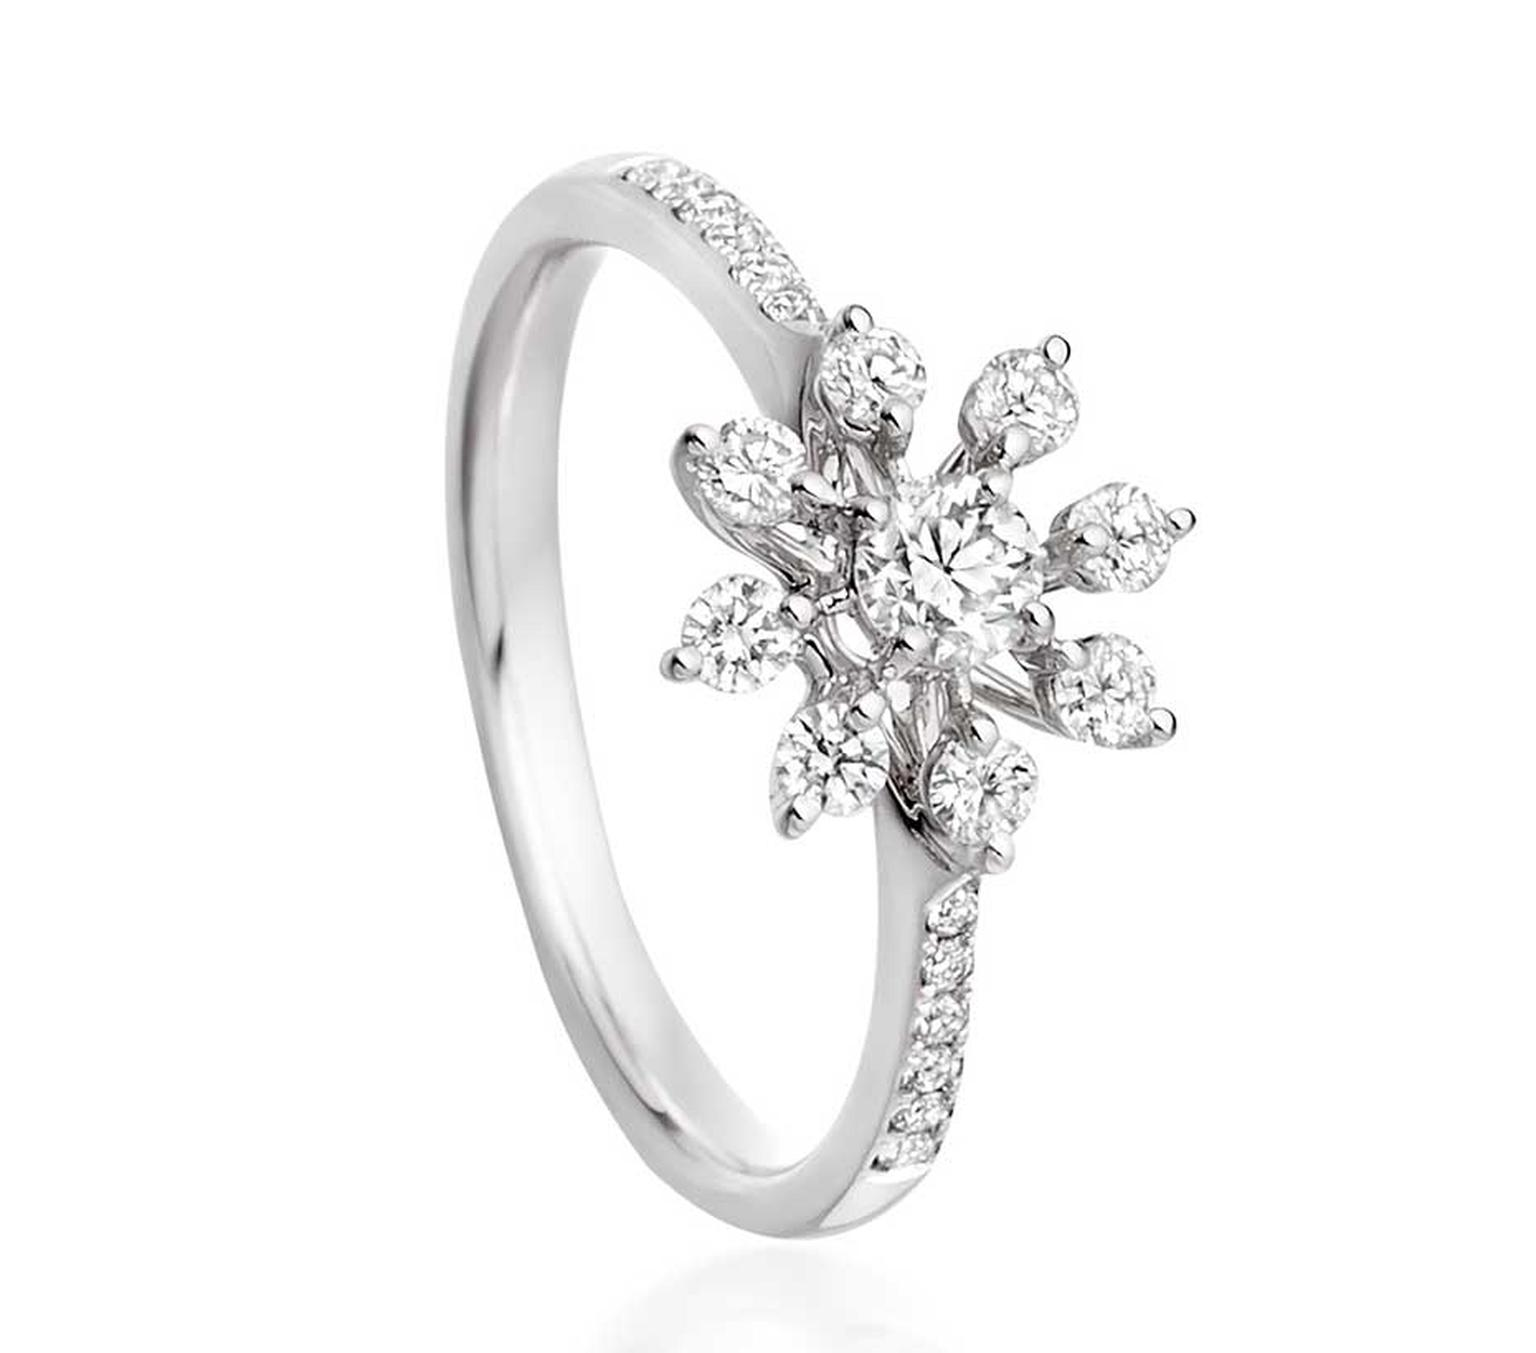 Astley Clarke Diamond Swirl engagement ring in white gold with diamonds totalling 0.50ct.